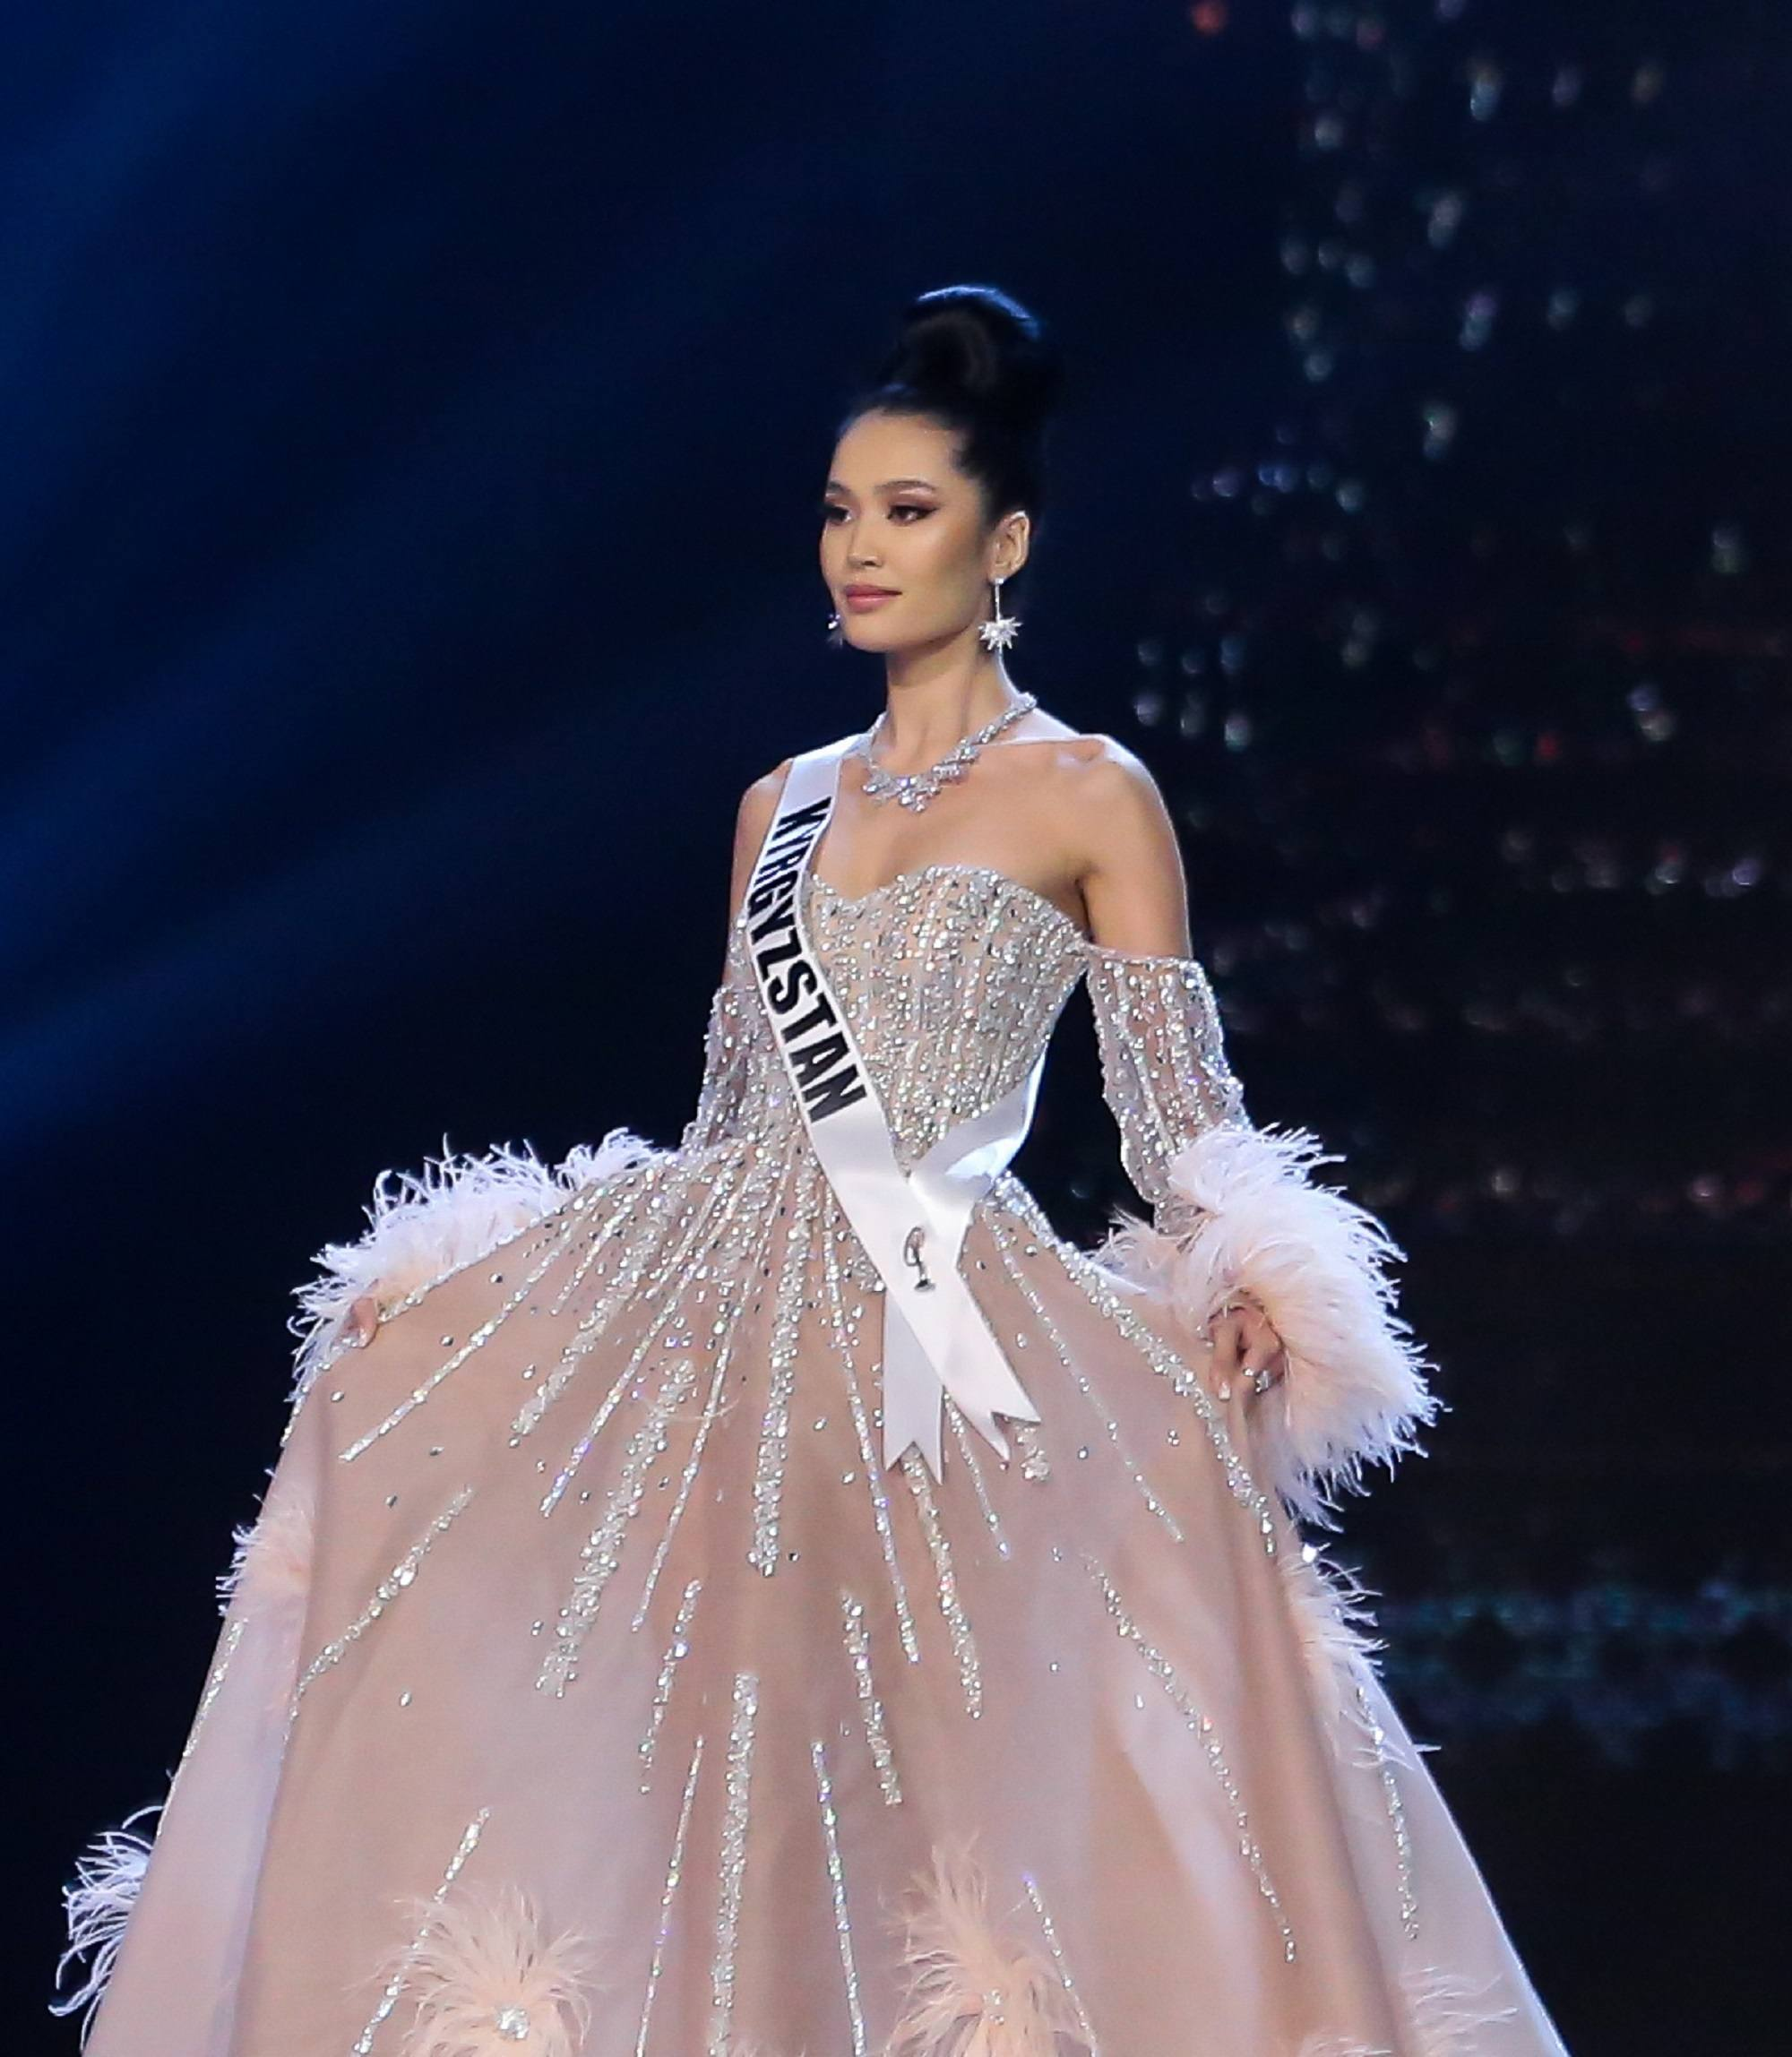 Miss Universe 2018 hairstyles : Ms. Kyrgyzstan Begimay Karybekova with black hair in a bun and light pink ball gown on stage